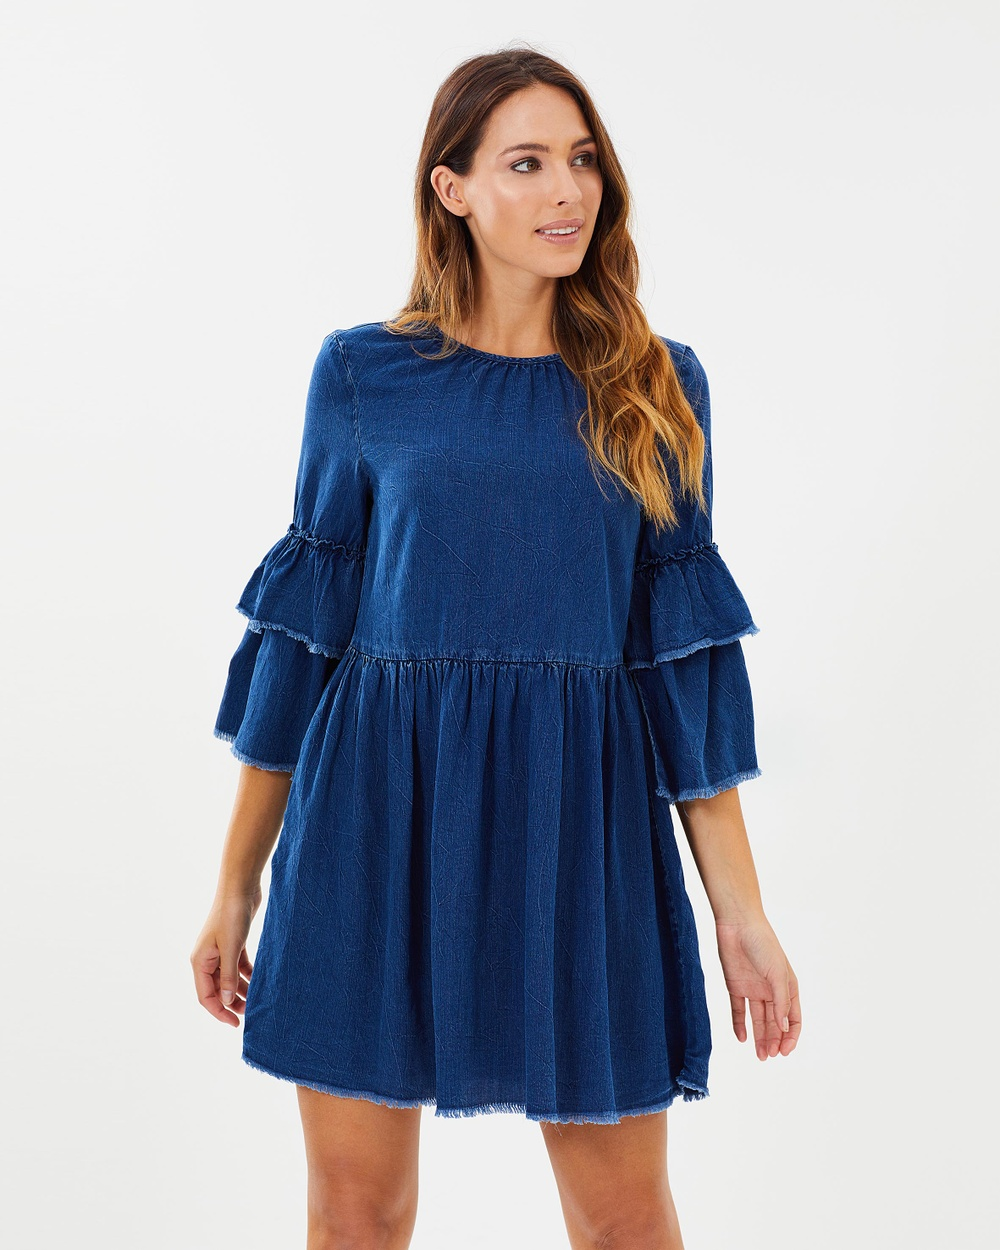 ONLY Flynn Raw Edge Denim Dress Dresses Dark Blue Denim Flynn Raw Edge Denim Dress